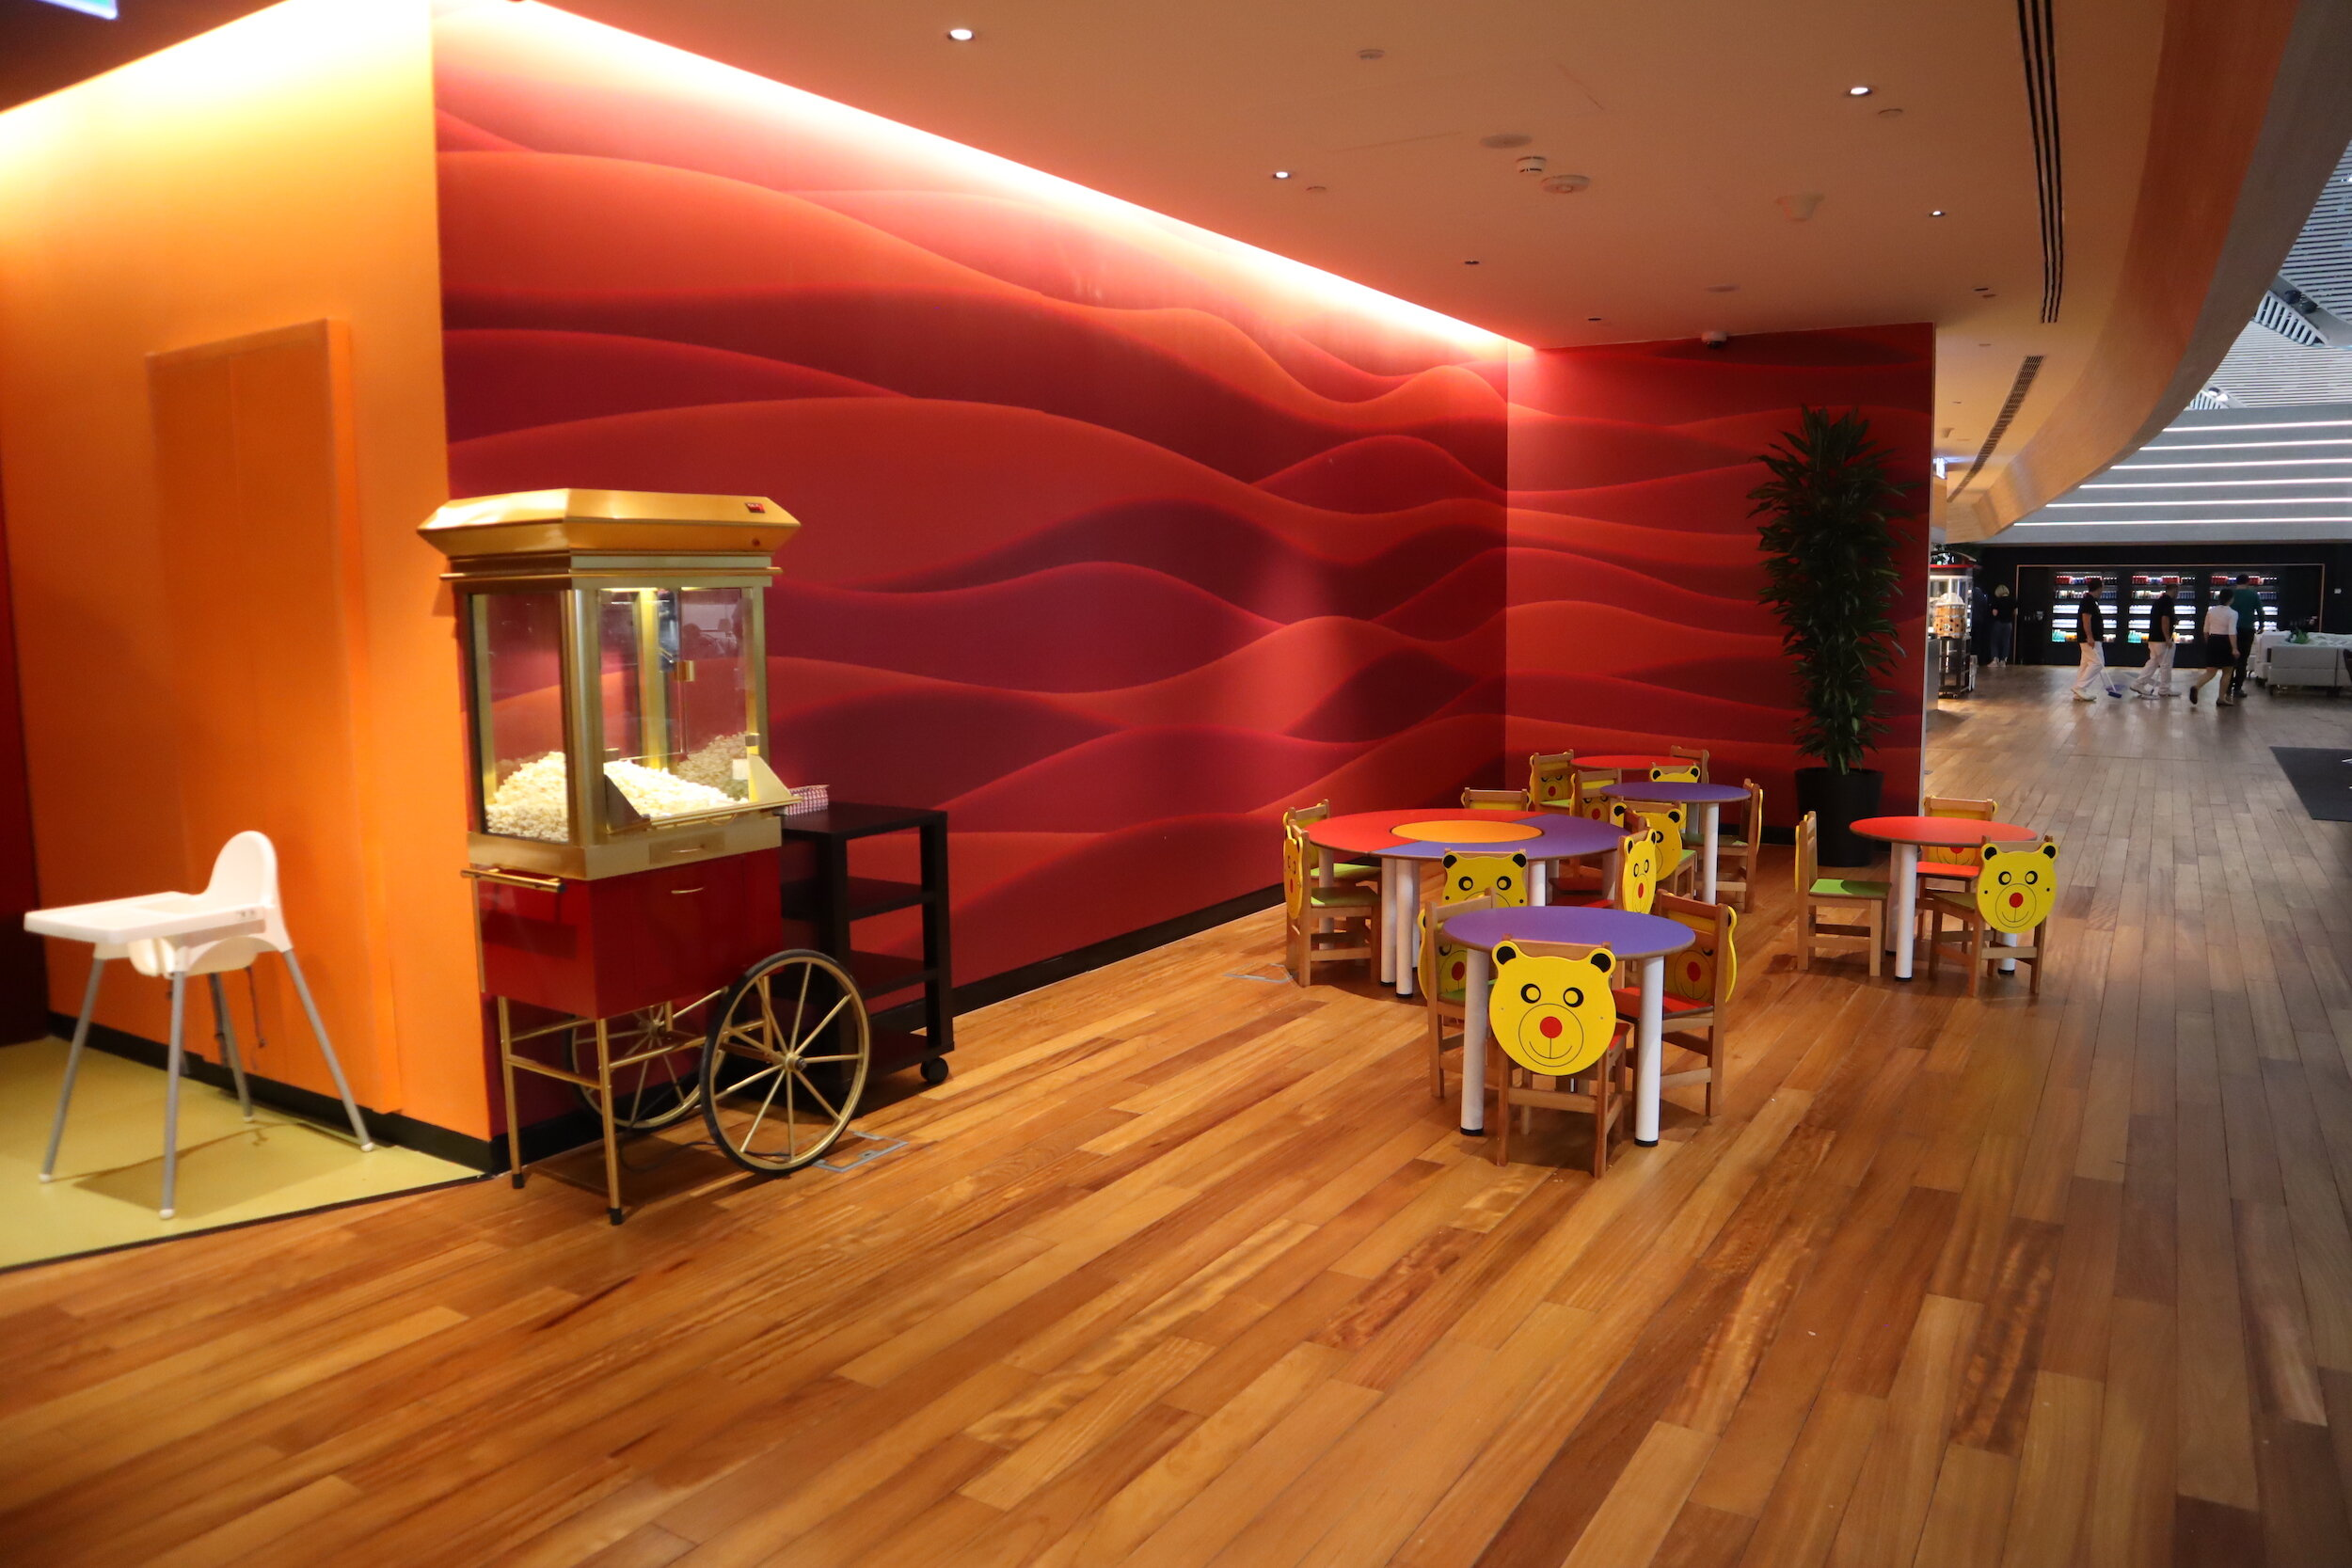 Turkish Airlines Business Lounge Istanbul – Kids' play area